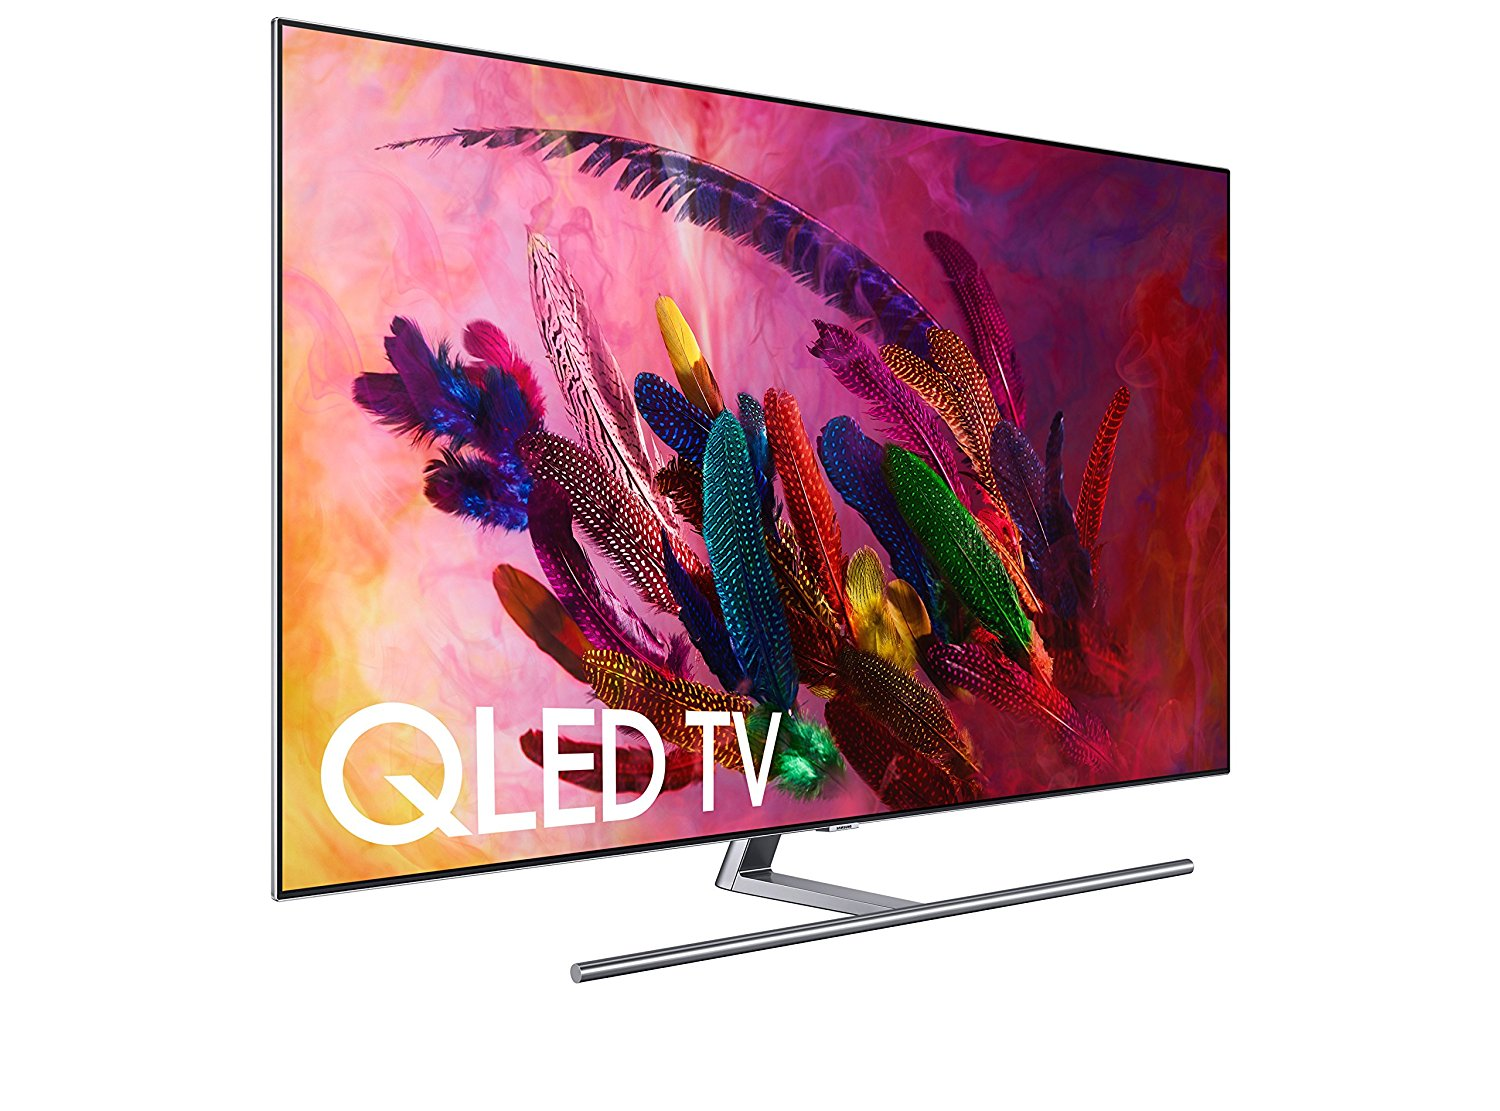 Image for Samsung QN75Q7FN 75-Inch 4K Ultra HD Smart QLED TV